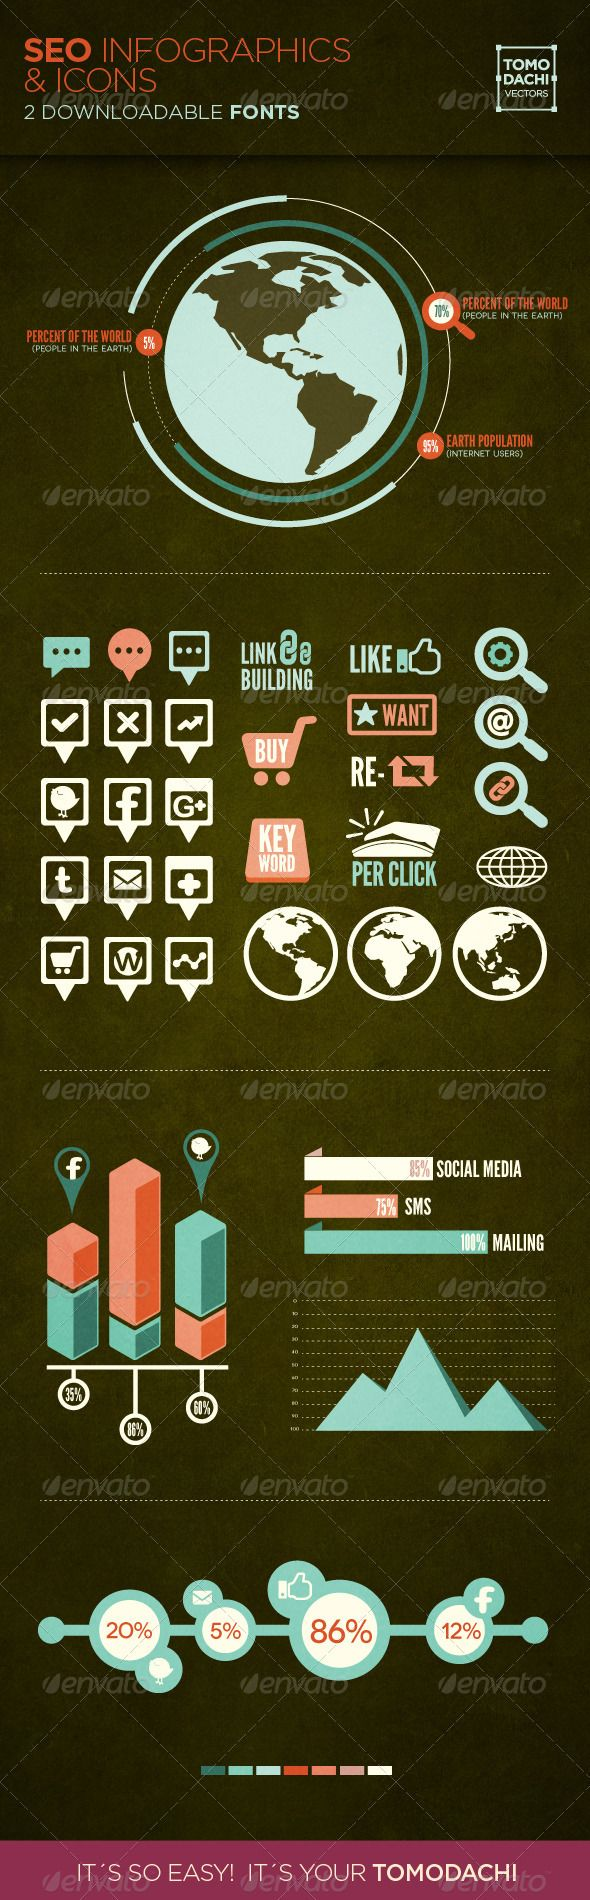 I chose to pin this infographic, because I dont think it's successful in communicating data to the viewer. While there are avliable stats, they are small and not laid out in a way that simple for the eye to interperate. Examples: the world has percentages displayed around it, but not there is not an easy line to follow to see those, like a pie graph might have.